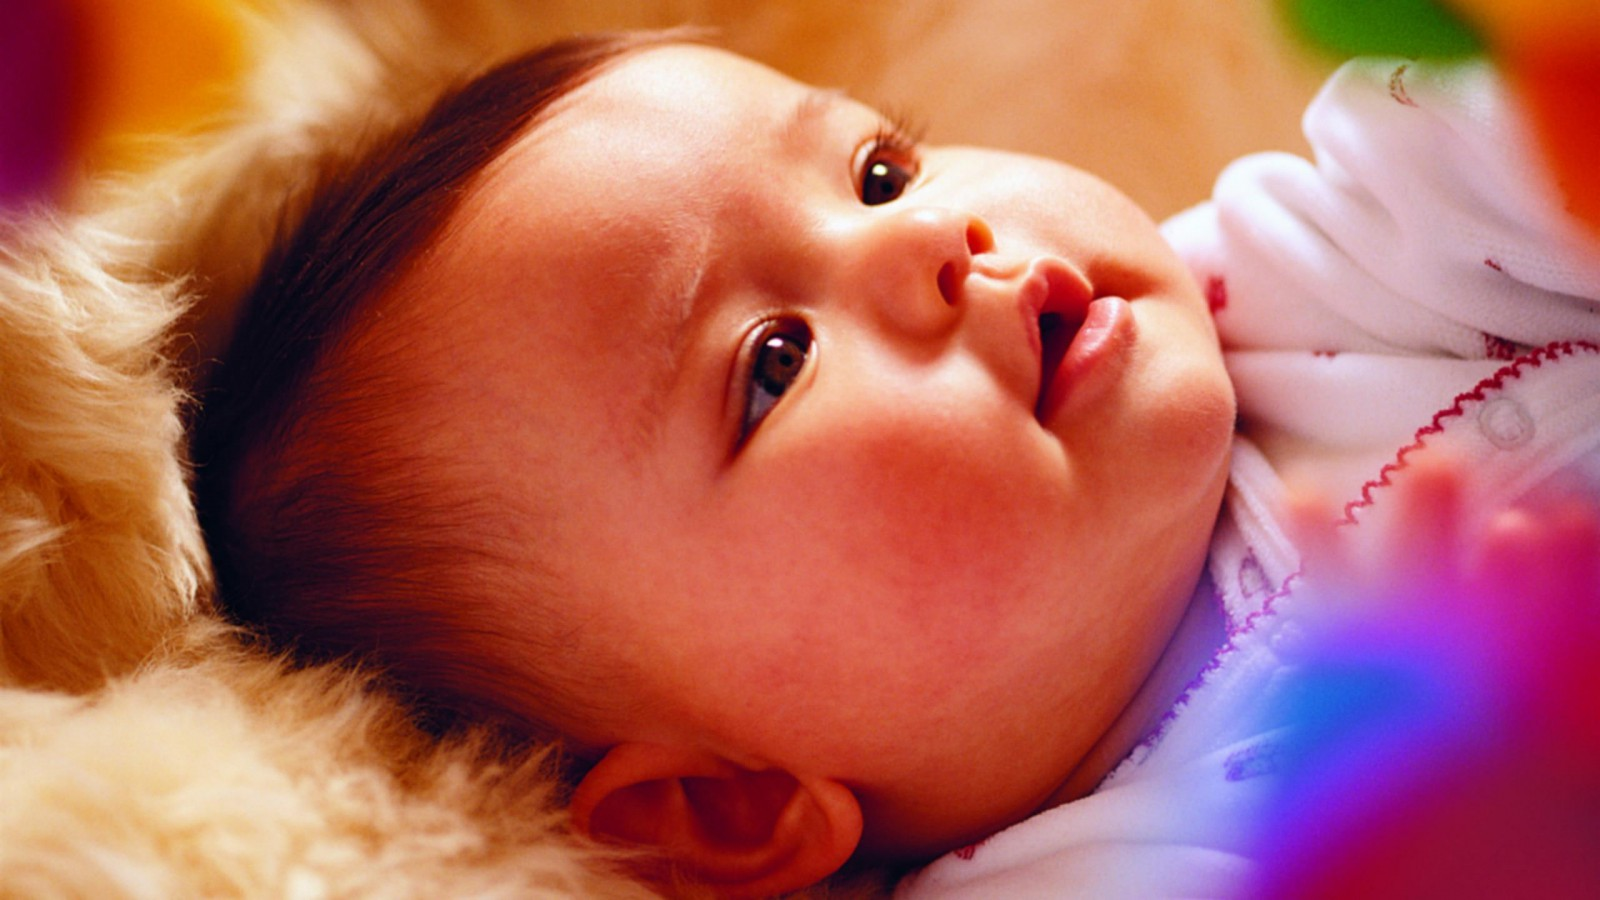 Cute Baby Wallpaper HD Pictures 2013 1600x900 pixel Popular HD 1600x900